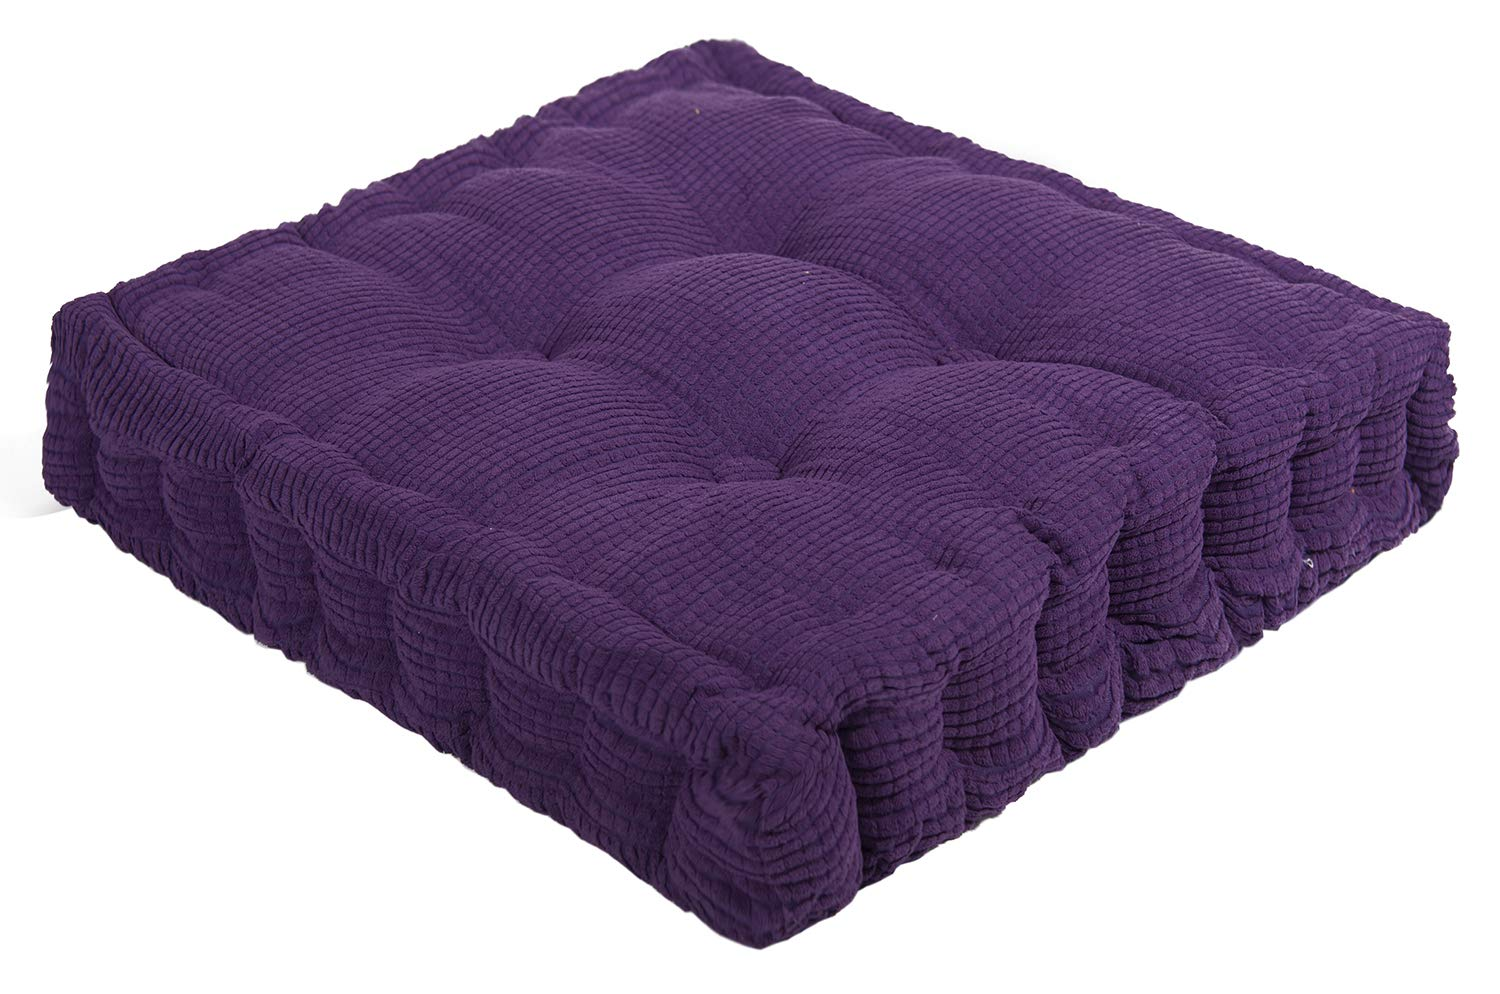 ChezMax Soft Corduroy Cotton EPE Cotton Filled Chair Cushion Thickened Tatami Solid Color Pad for Home Office Dinning Chair Indoor Outdoor Seat Chair Pad Purple 16 X 16 inch